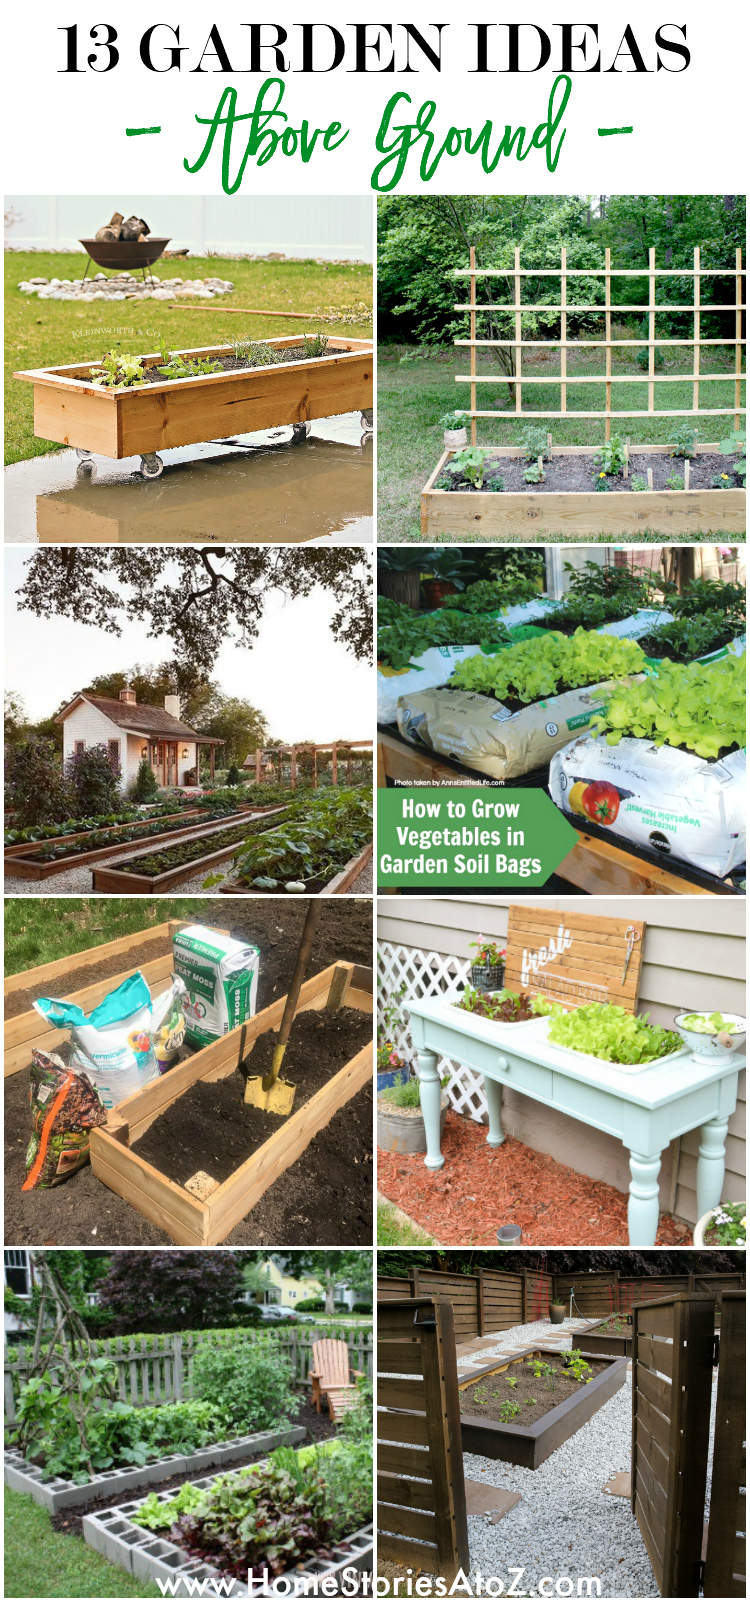 13 Raised Garden Bed Projects and Ideas on pergolas trellis designs, home trellis designs, garden plants trellis designs, grapes trellis designs, raised garden beds landscaping, raised garden beds landscape design,